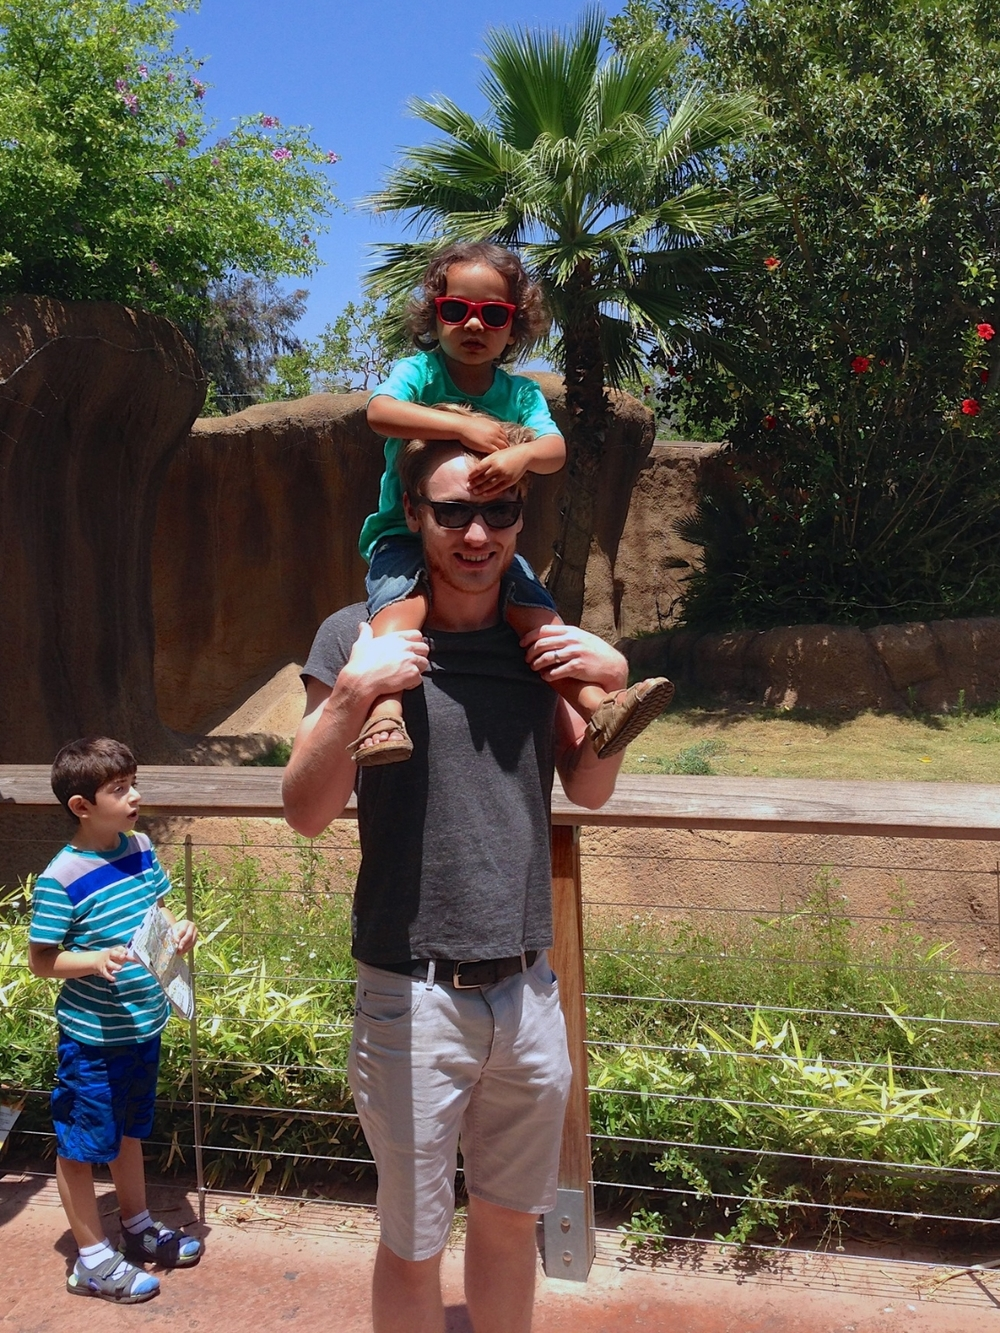 Travis + kids at the zoo